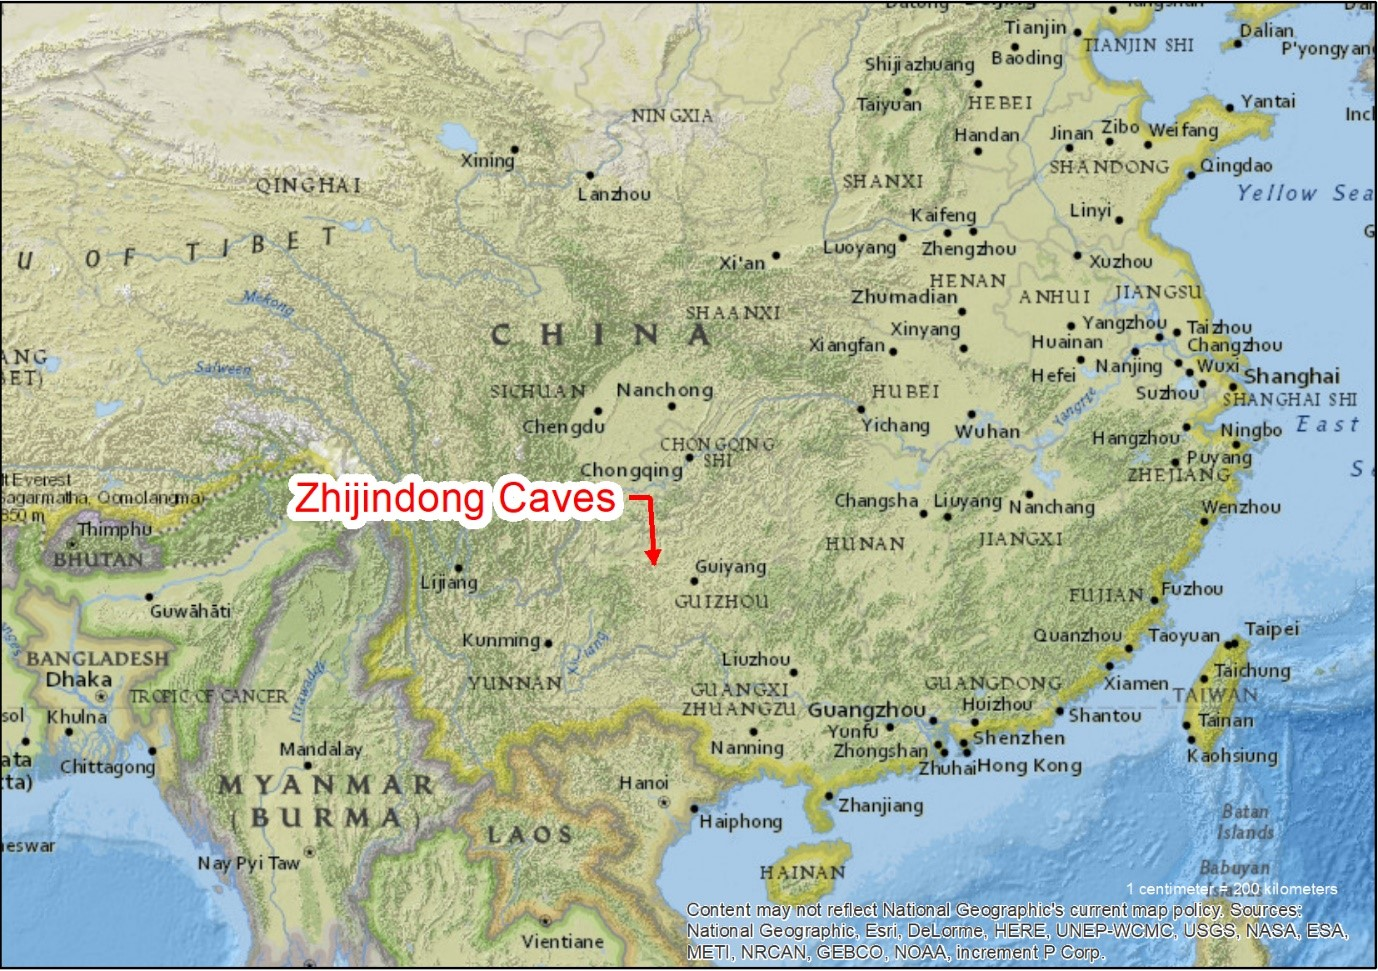 Location_of_Zhijindong_Caves__China.jpg